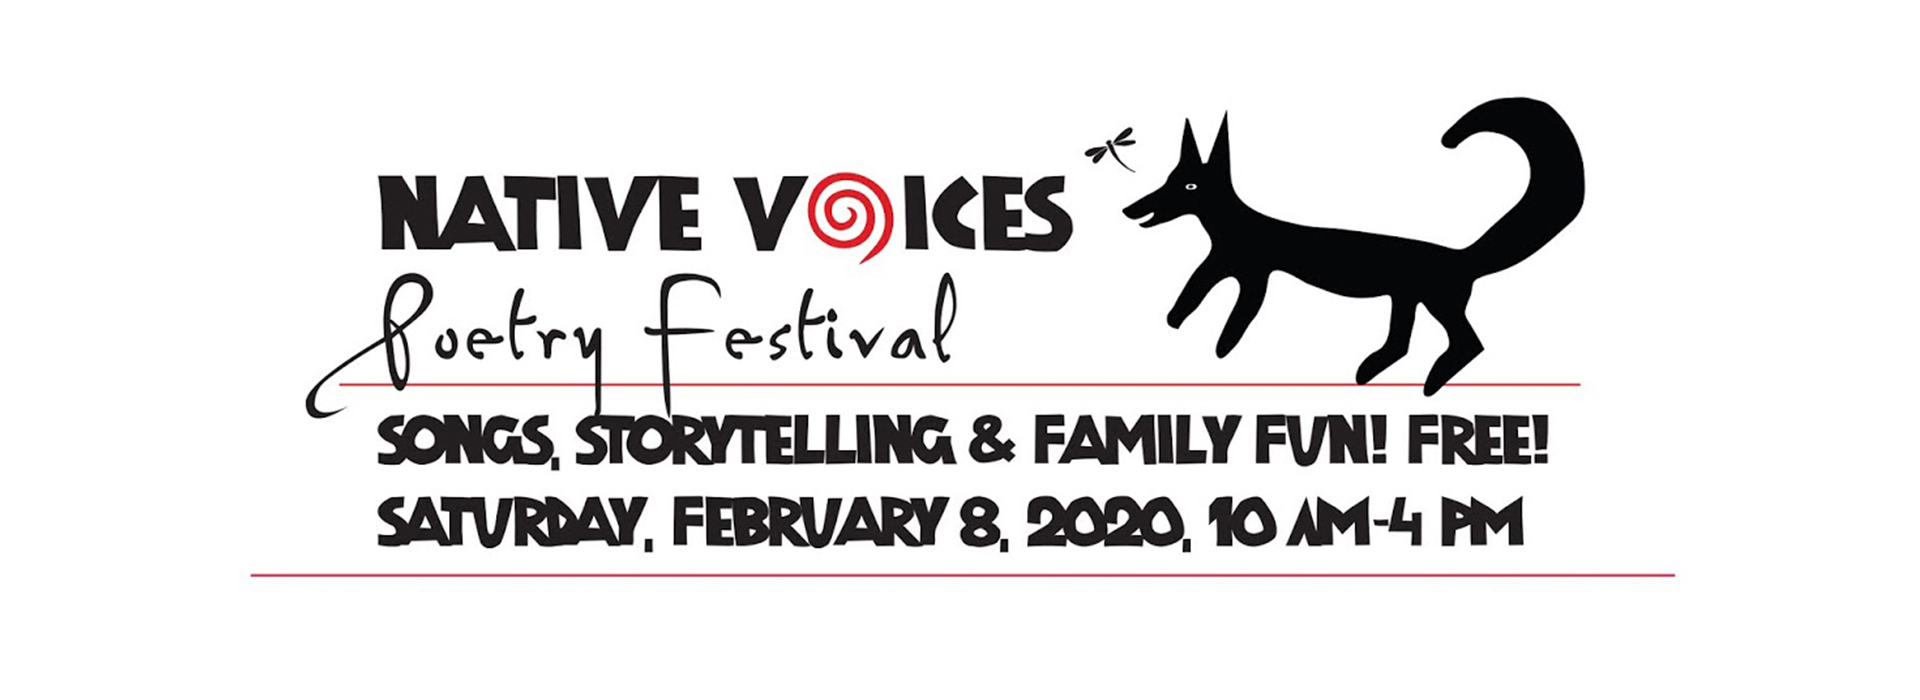 Annual Native Voices Poetry Festival set for Feb. 8 at Dorothy Ramon Learning Center in Banning